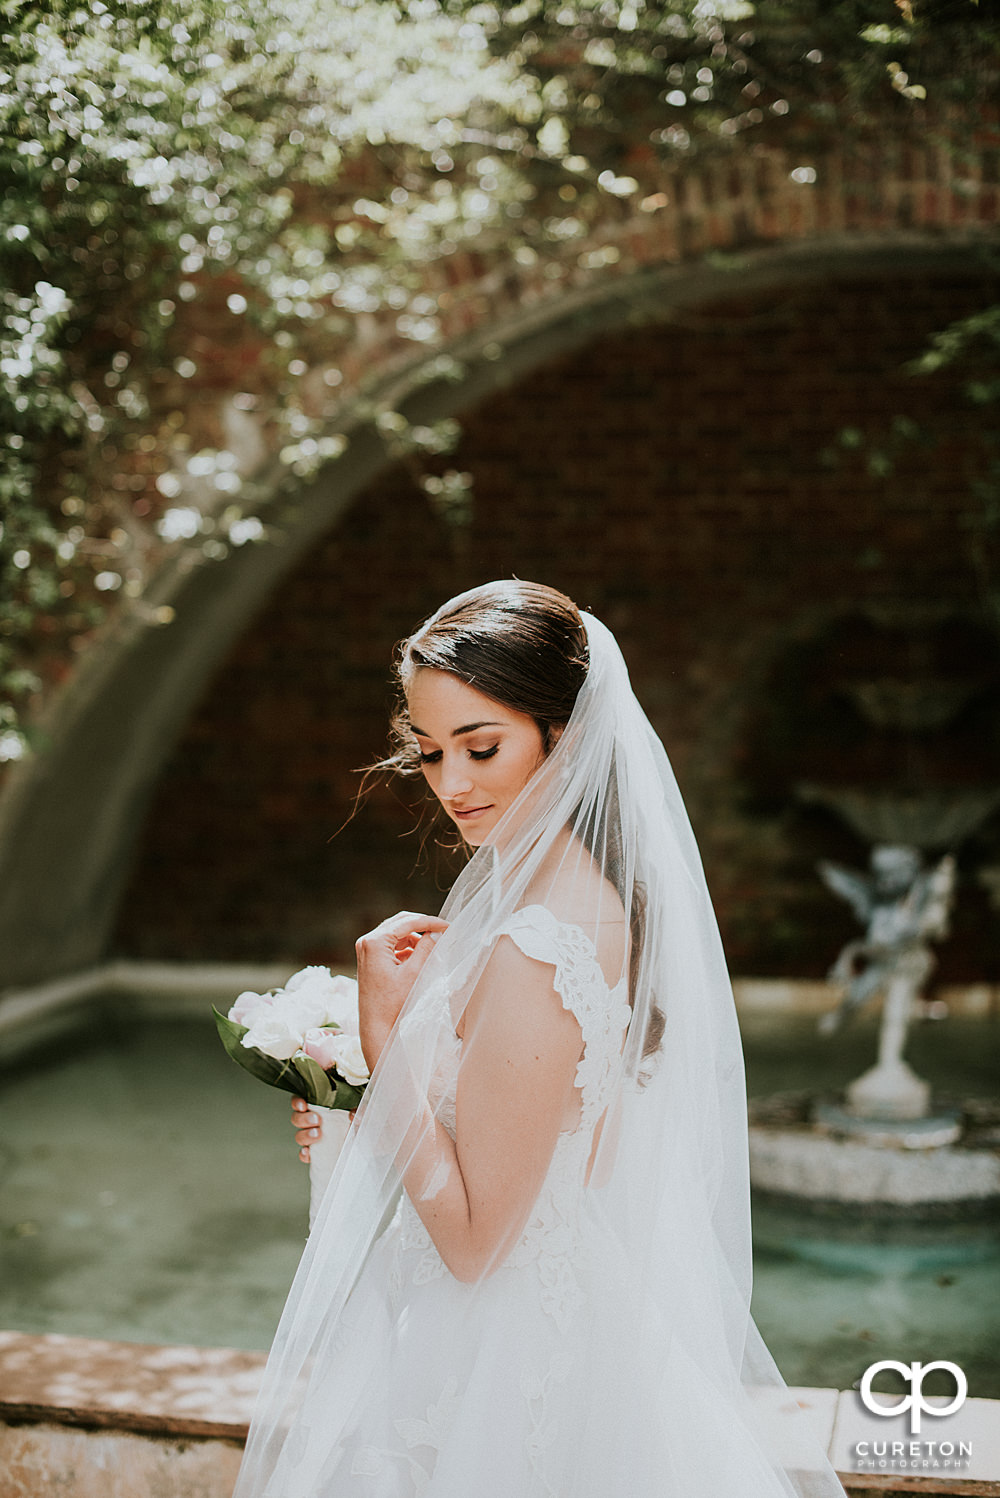 Stunning high fashion bridal at the rose garden on the Furman University campus.